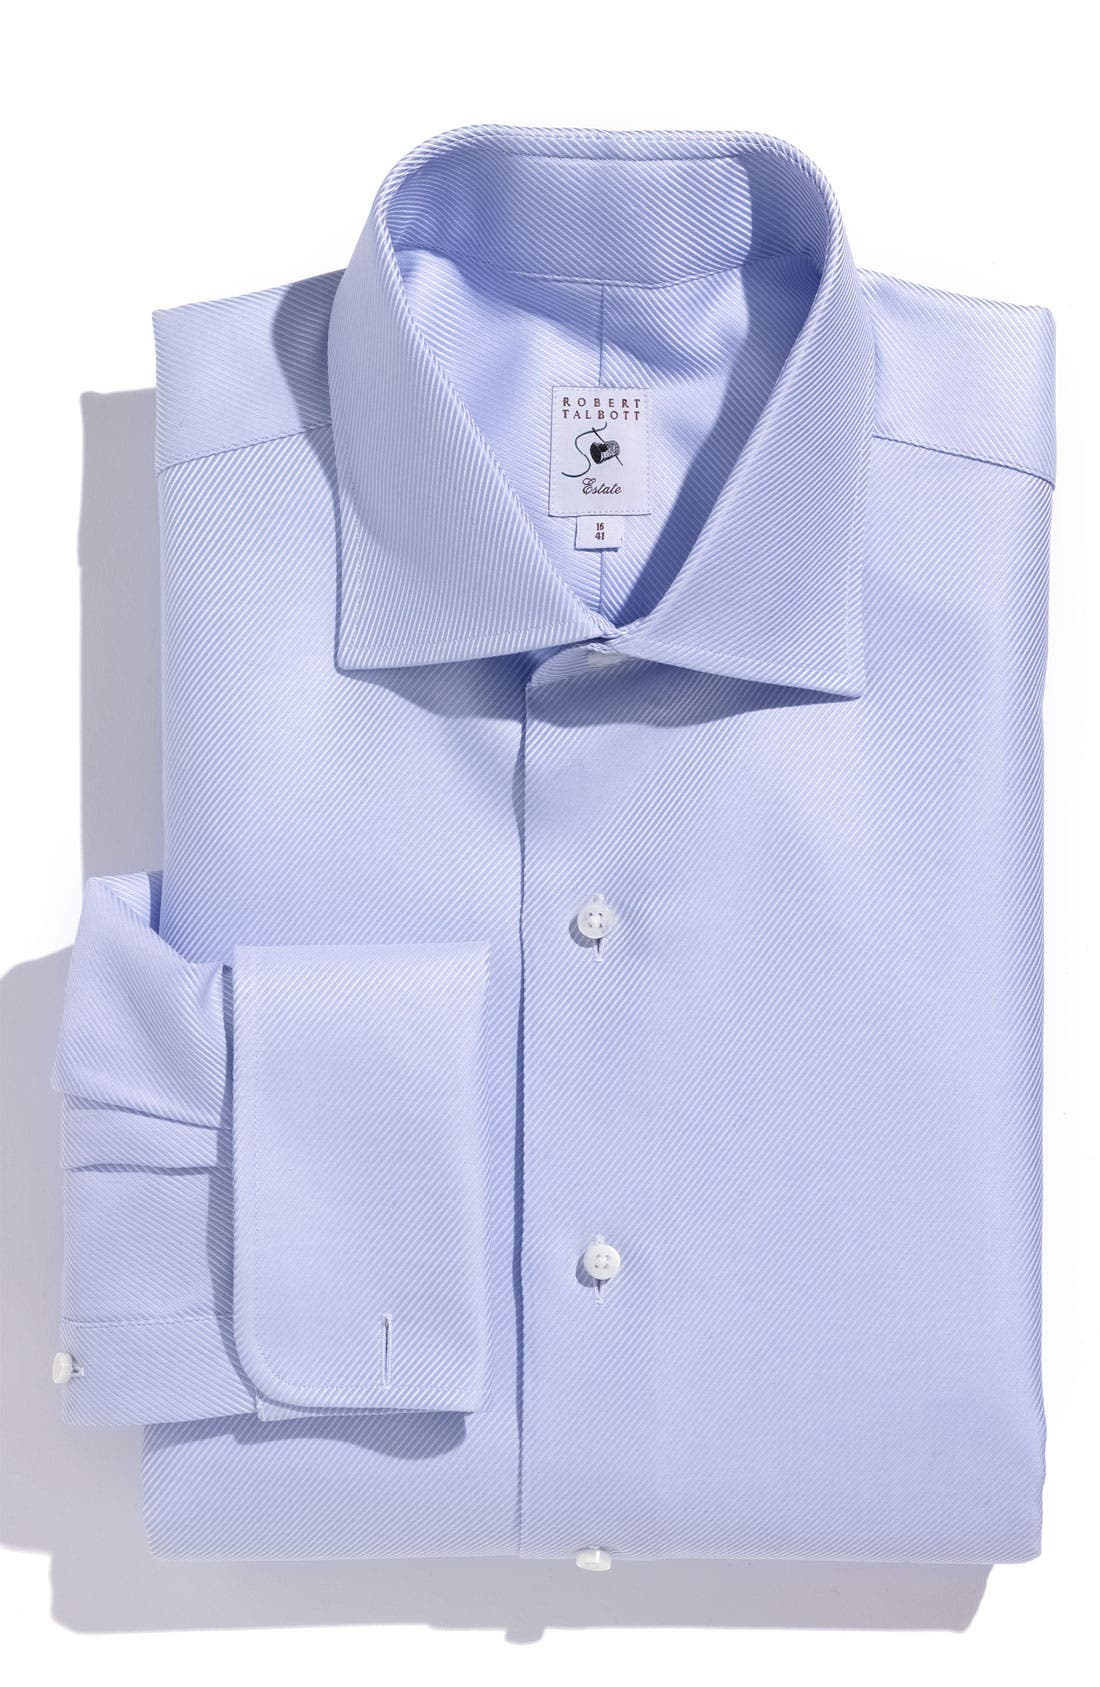 Alternate Image 1 Selected - Robert Talbott Regular Fit Estate Dress Shirt (Online Exclusive)